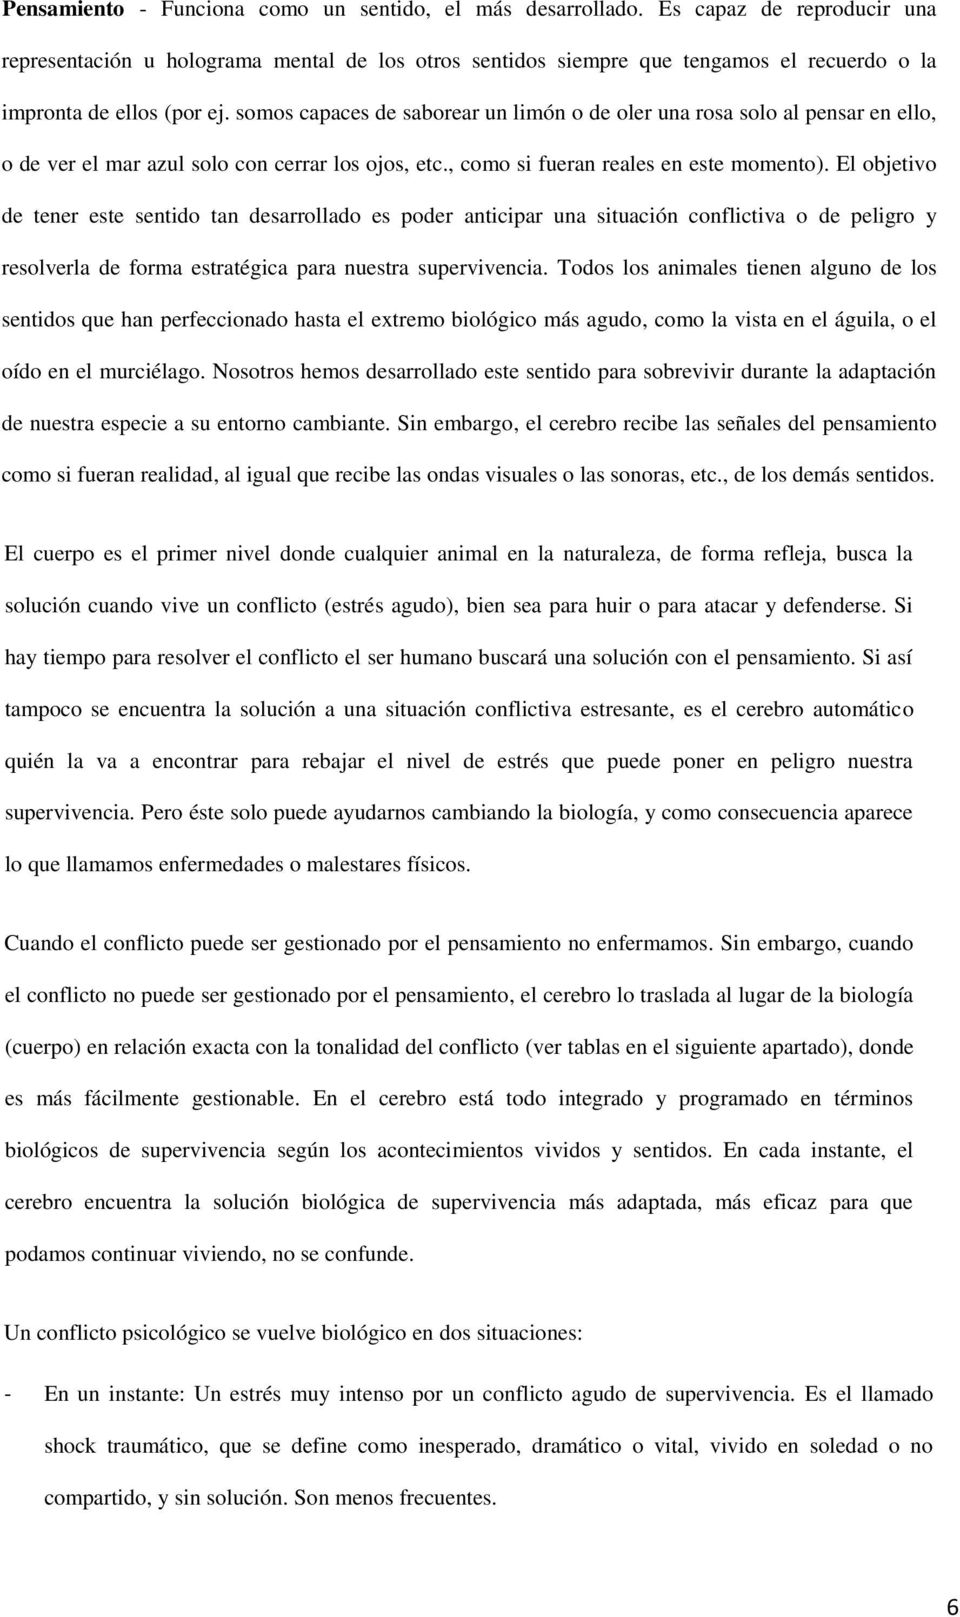 Desprogramacion Biologica Epub Download